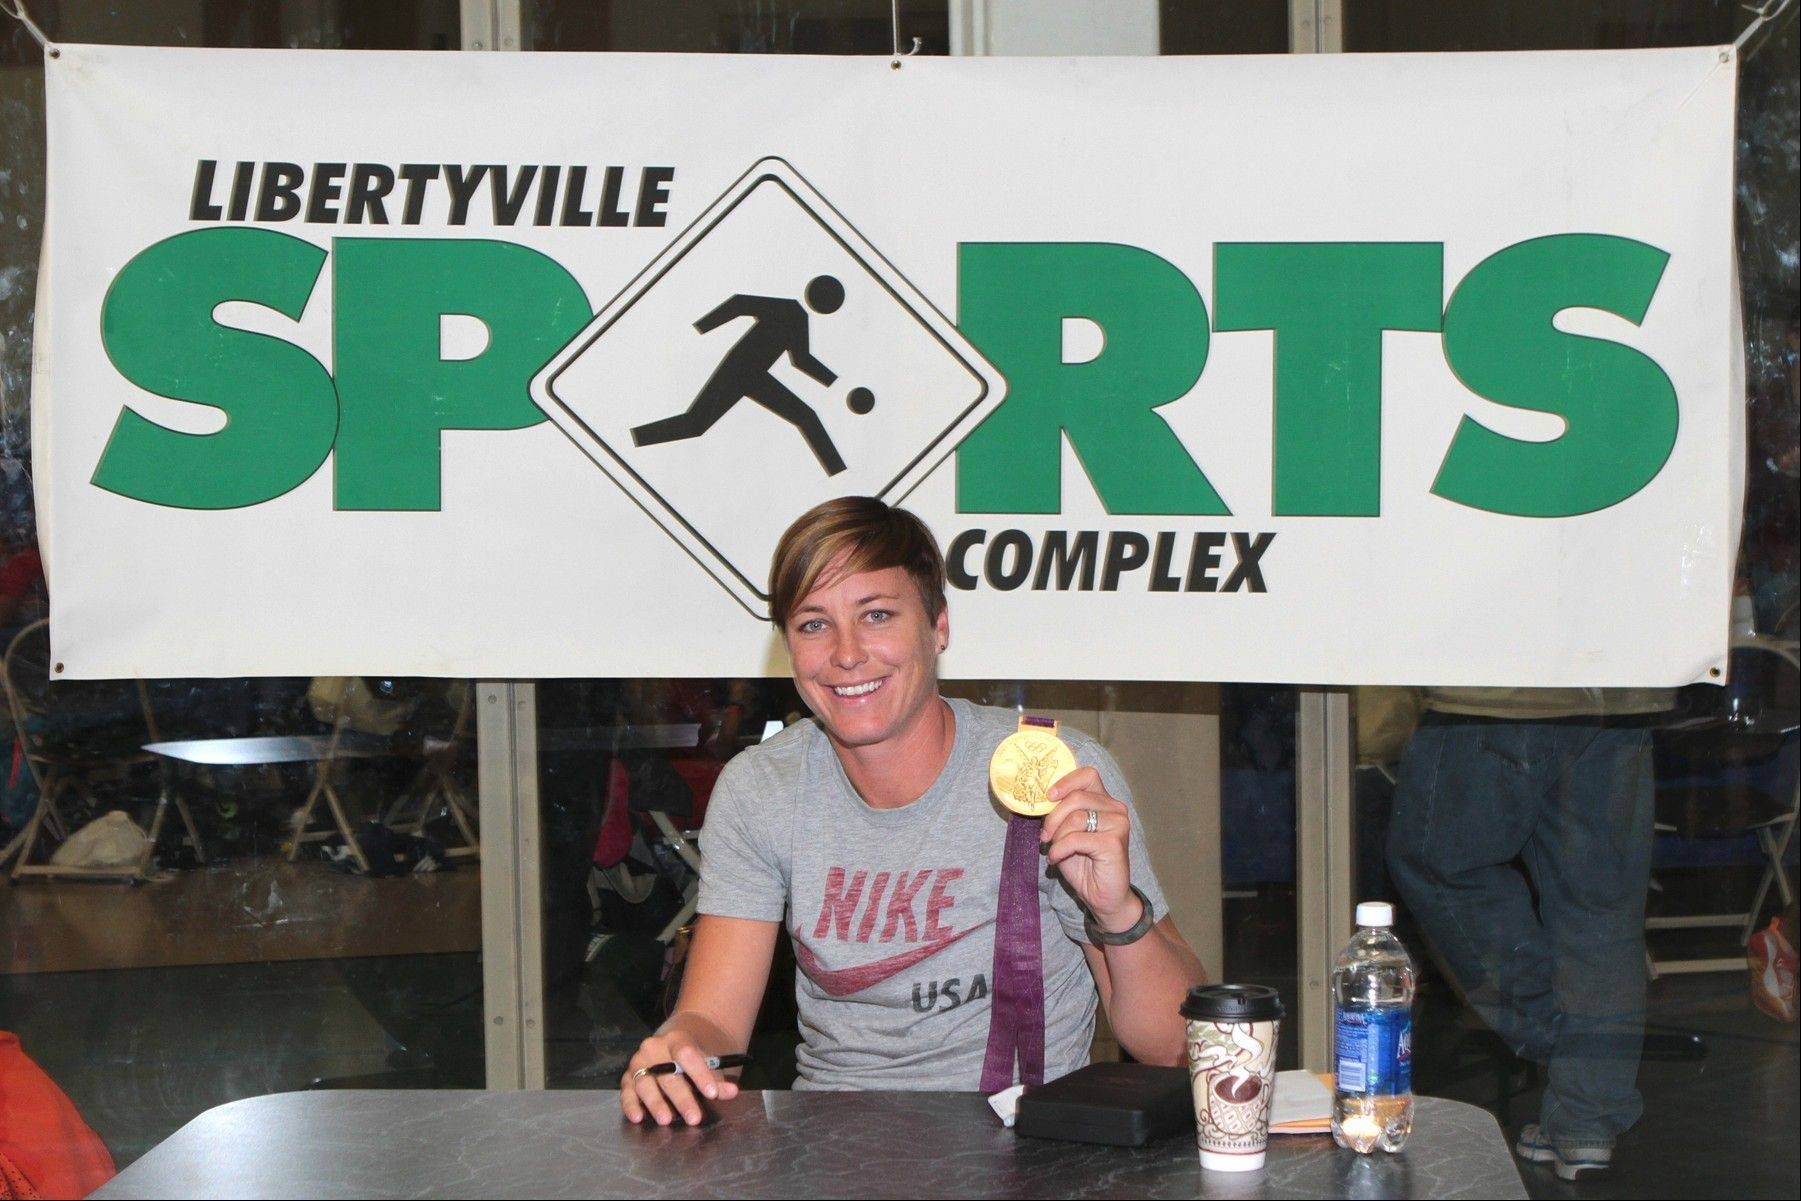 Team USA women's soccer star Abby Wambach displays her Olympic gold medal at the Libertyville Sports Complex last Saturday during the IYSA Soccer for Success event at the Libertyville Sports Complex.